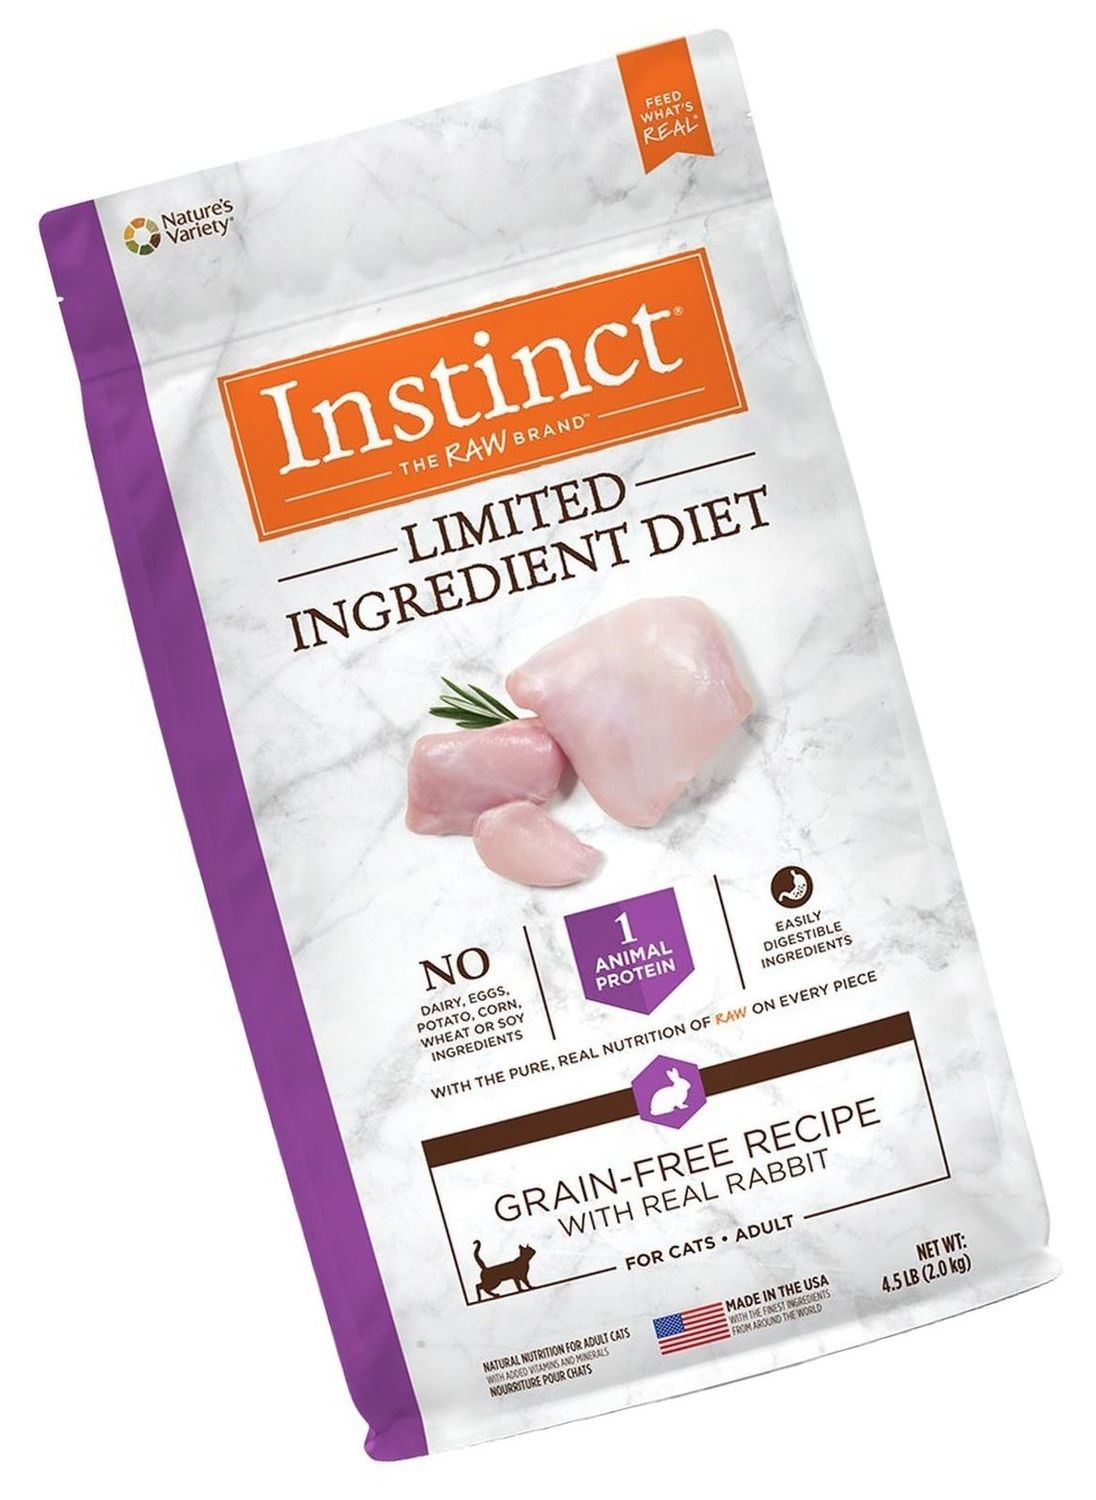 Natures Recipe Instinct Limited Ingredient Diet Grain Free Recipe With Real Rabbit Natural Dry 4.5 lbs (5/19) (A.J3)